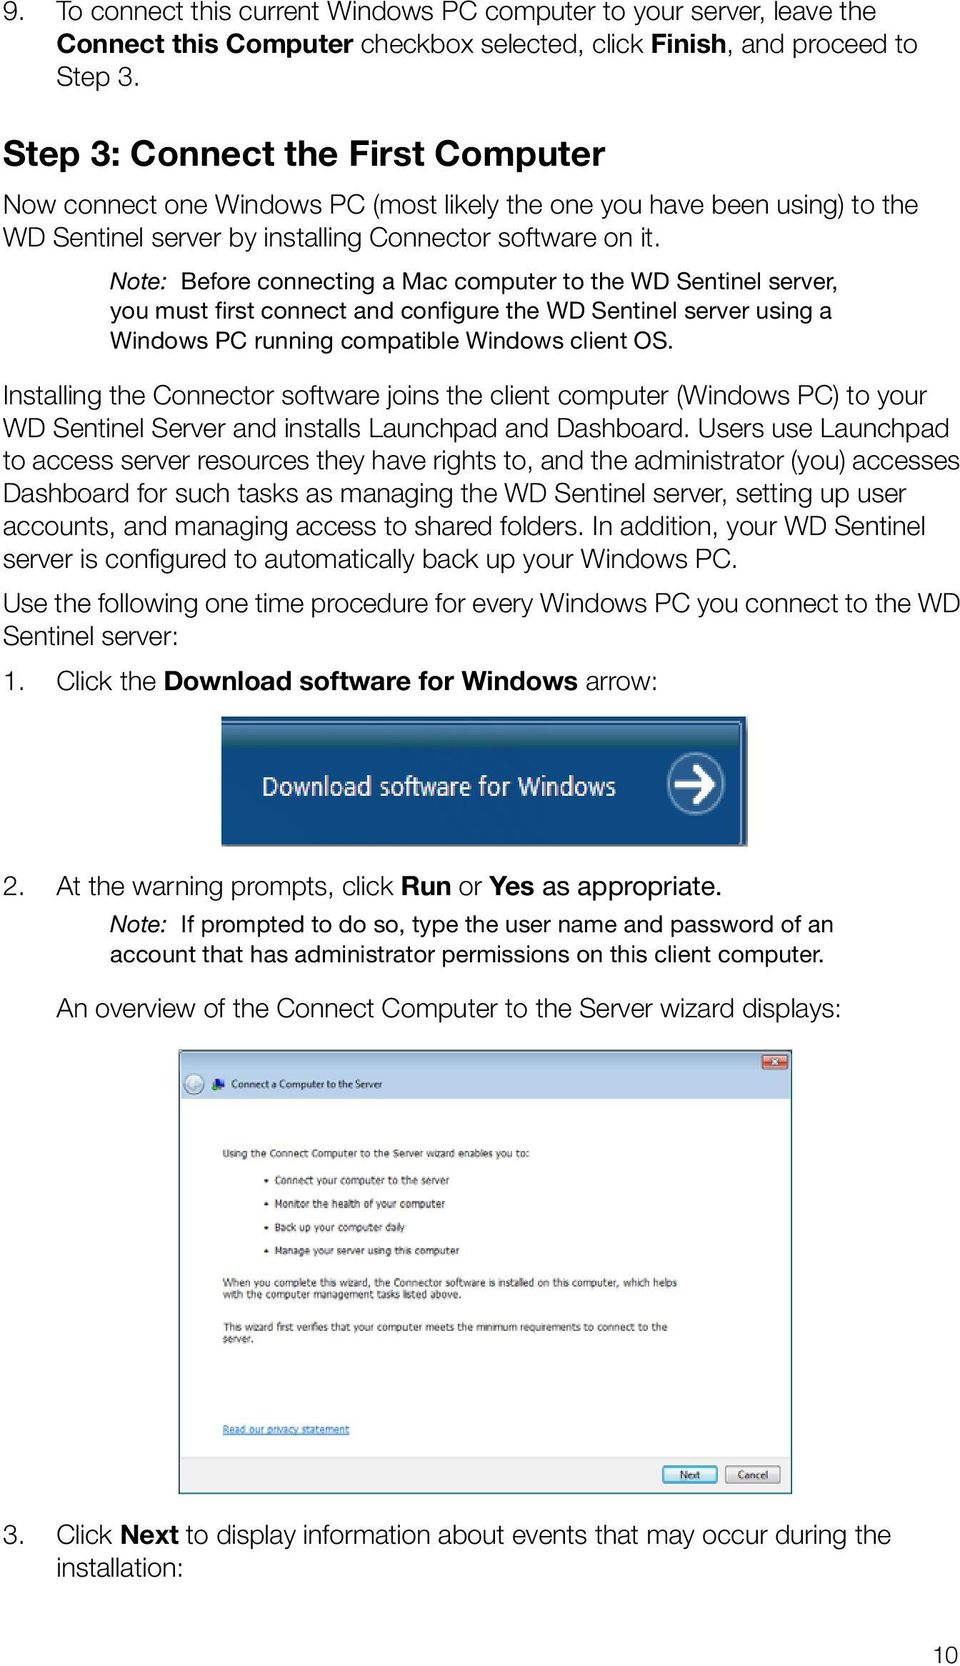 Note: Before connecting a Mac computer to the WD Sentinel server, you must first connect and configure the WD Sentinel server using a Windows PC running compatible Windows client OS.